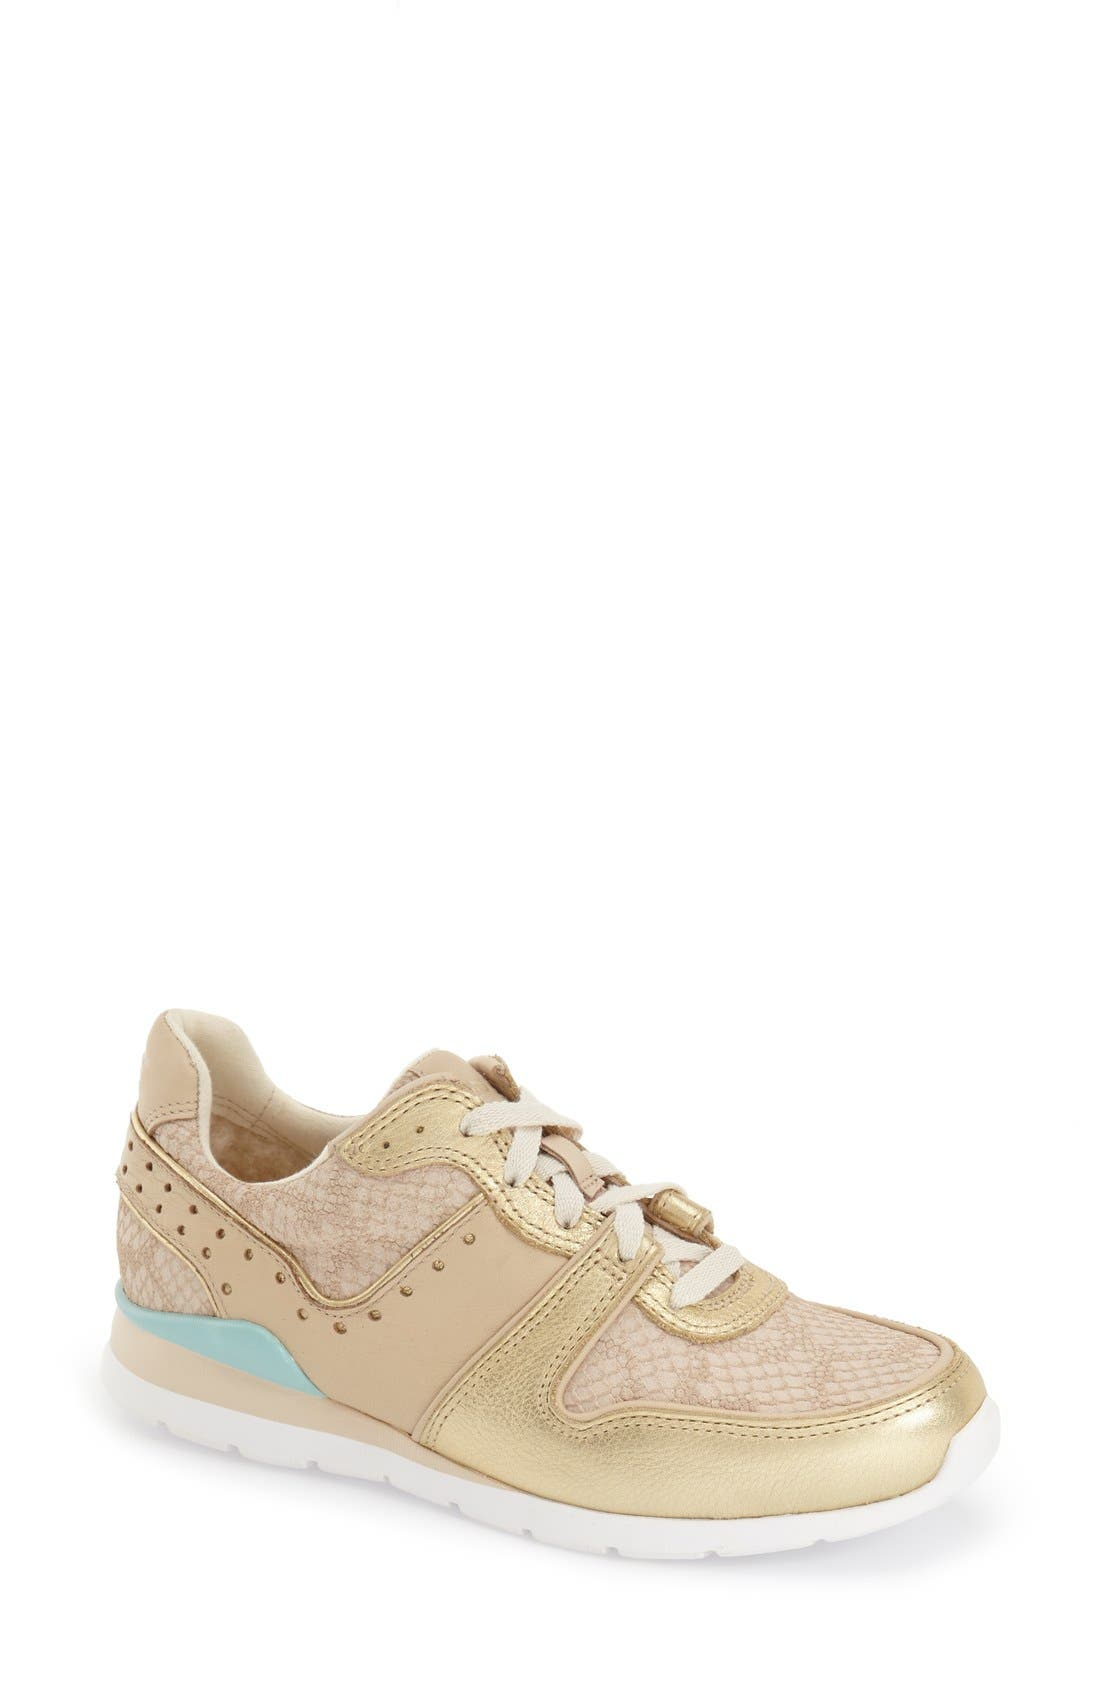 Deaven Sneaker,                         Main,                         color, Gold Fabric